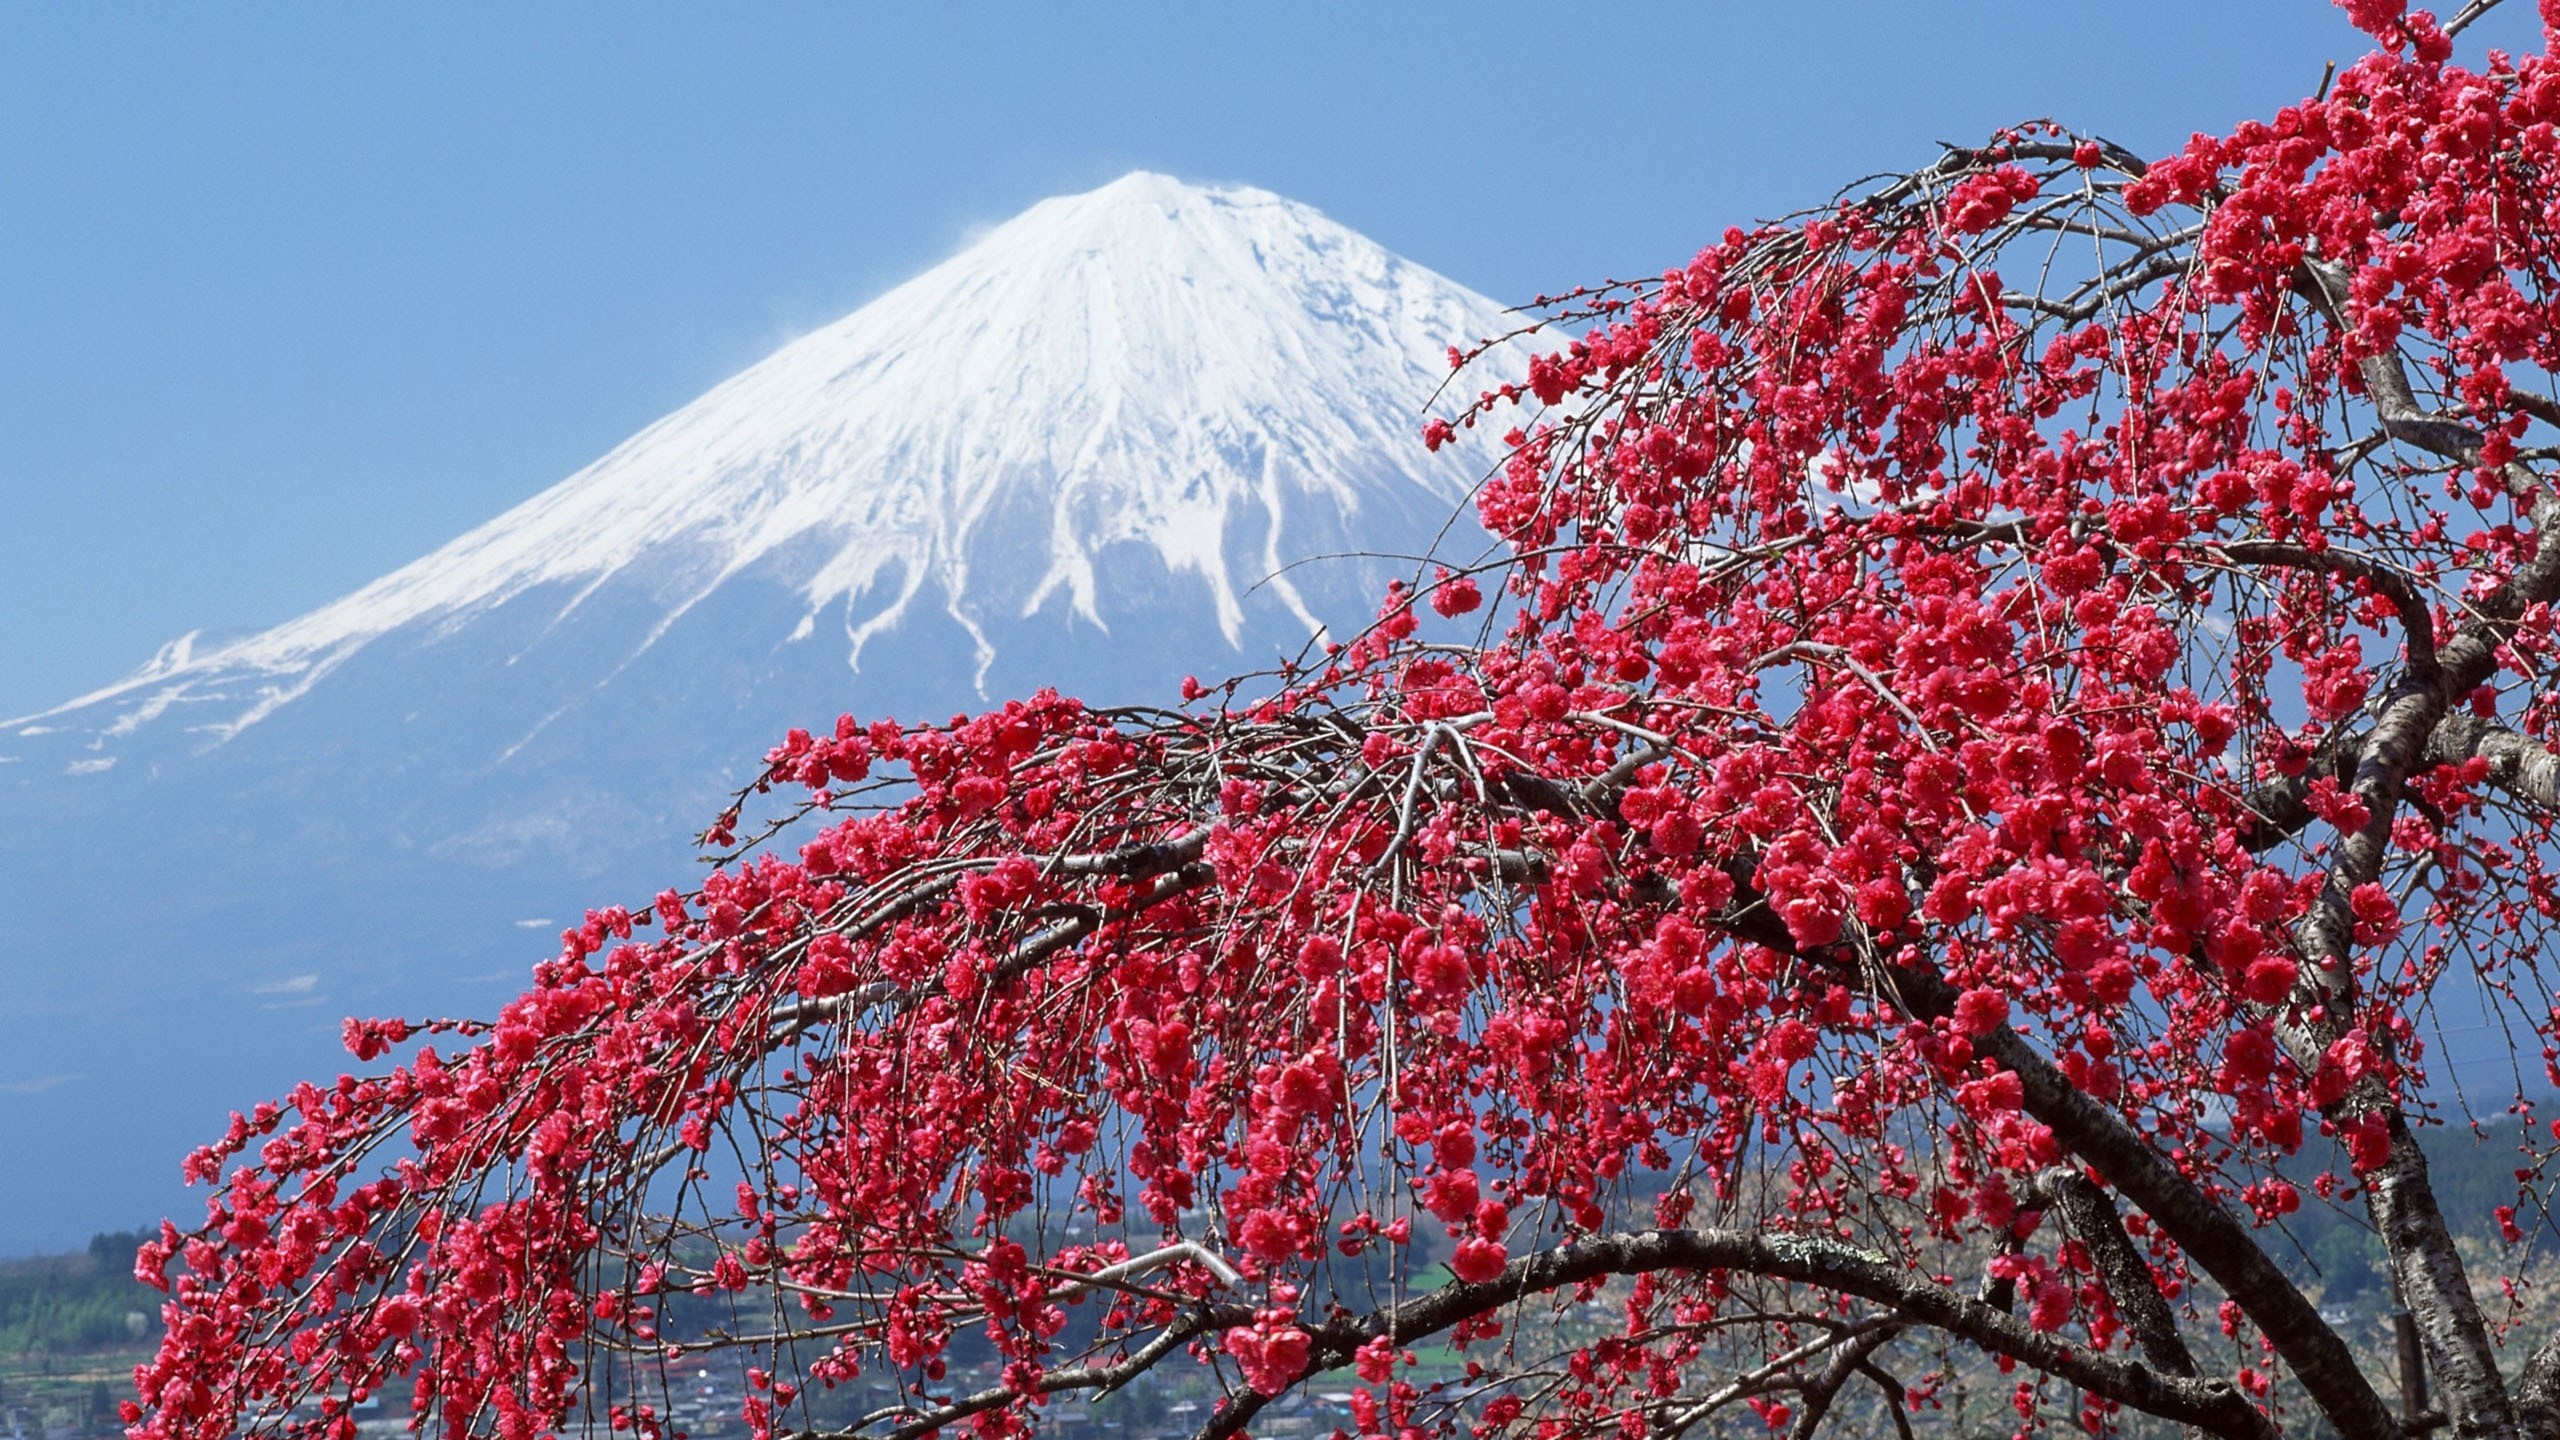 Res: 2560x1440, Earth - Mount Fuji Volcano Japan Blossom Wallpaper